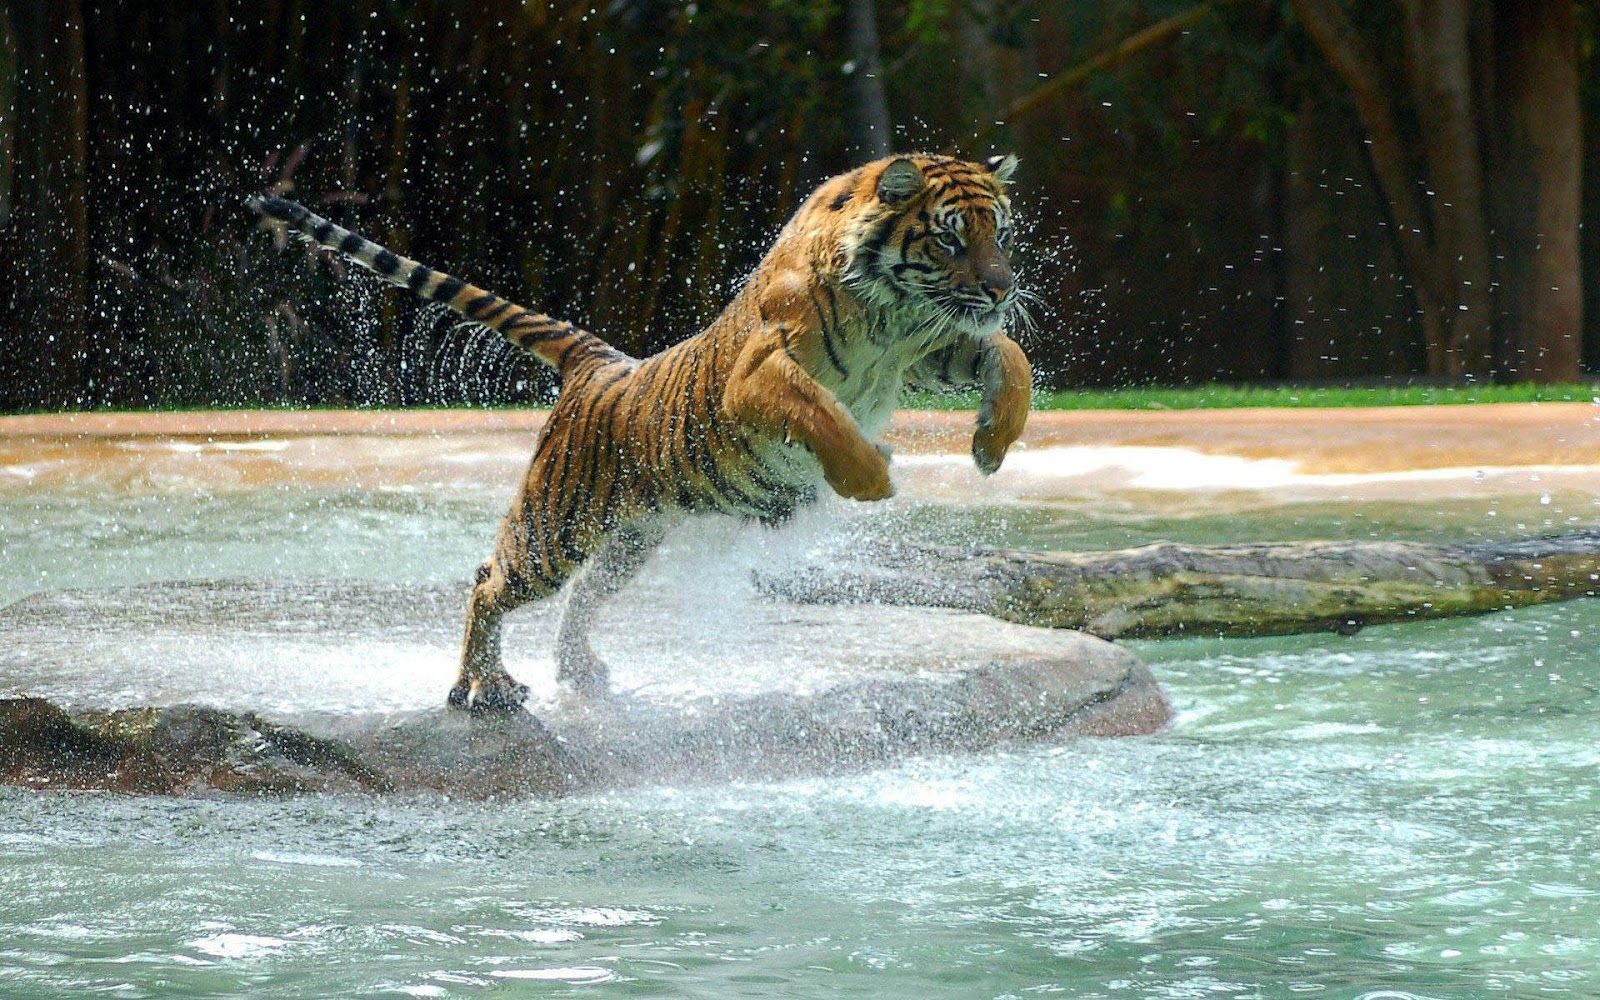 hd tigers wallpapers and photos | hd animals wallpapers